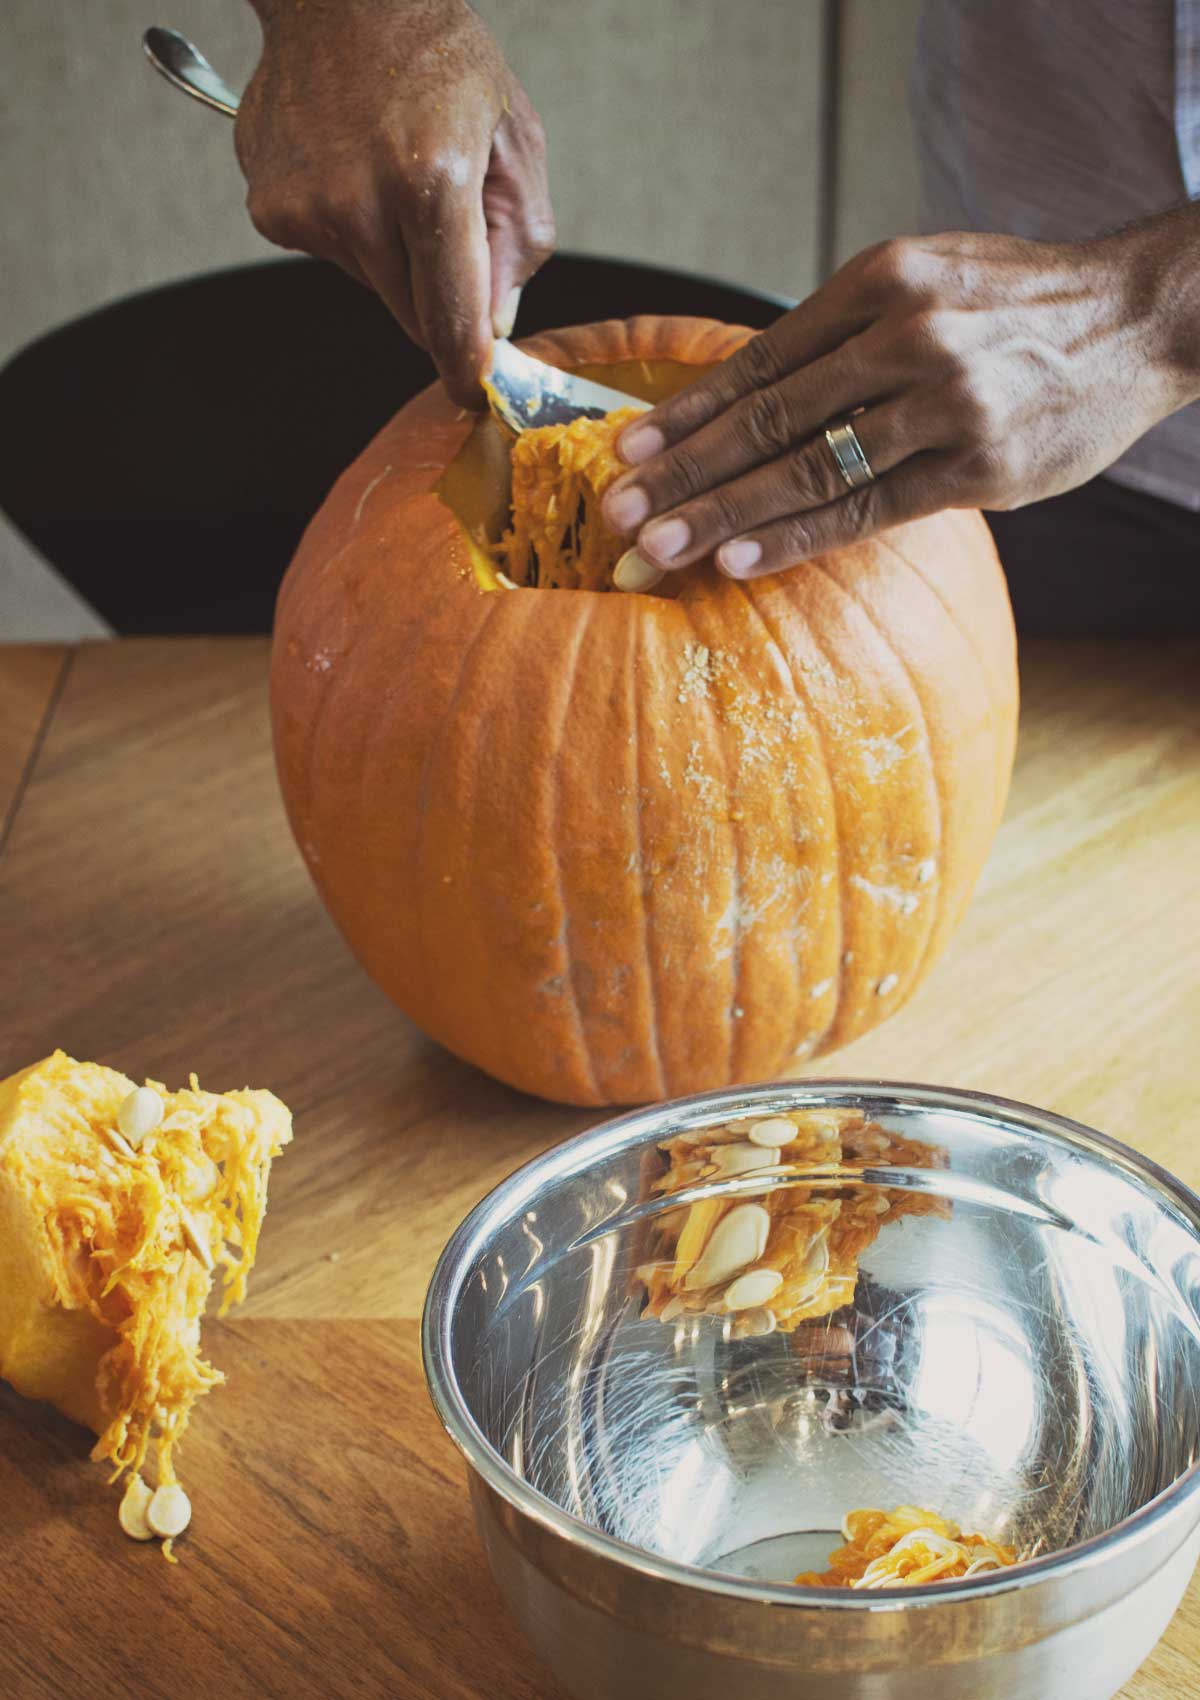 Scooping out a large Halloween pumpkin with a large spoon.